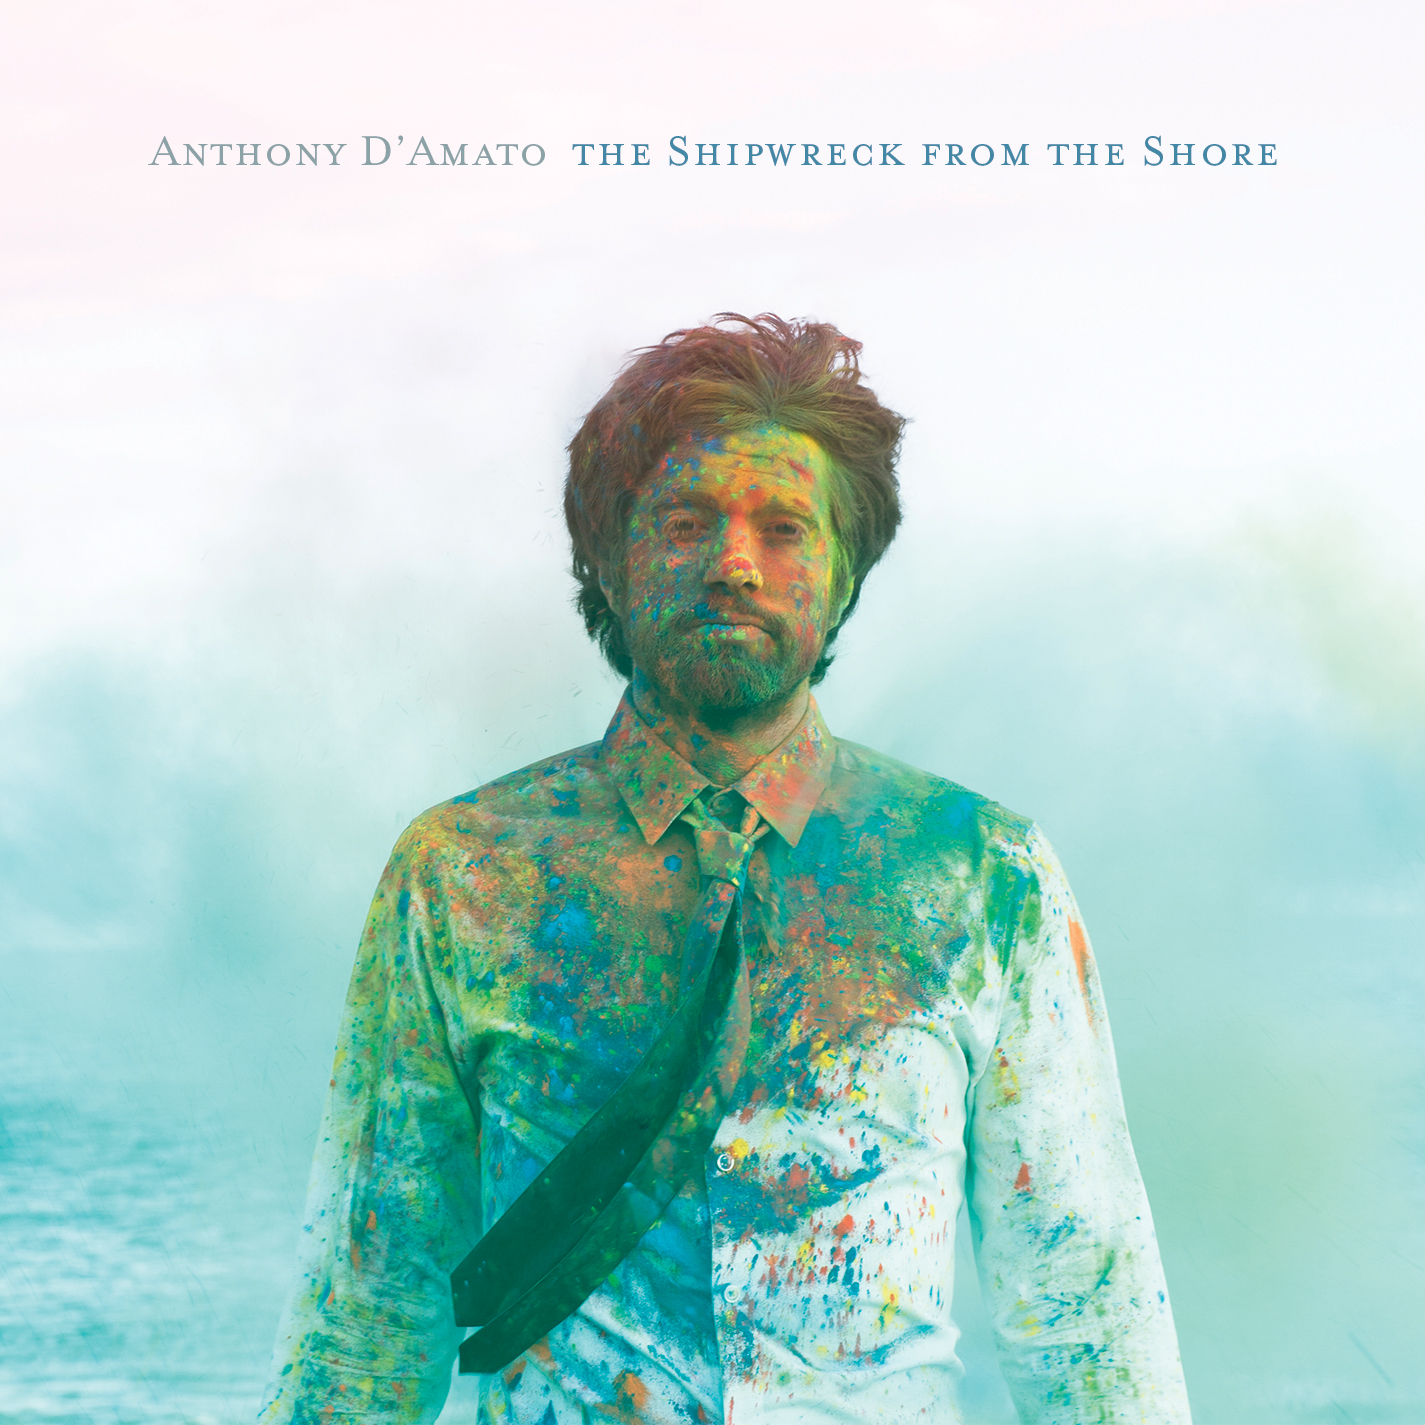 THE SHIPWRECK FROM THE SHORE (2014)